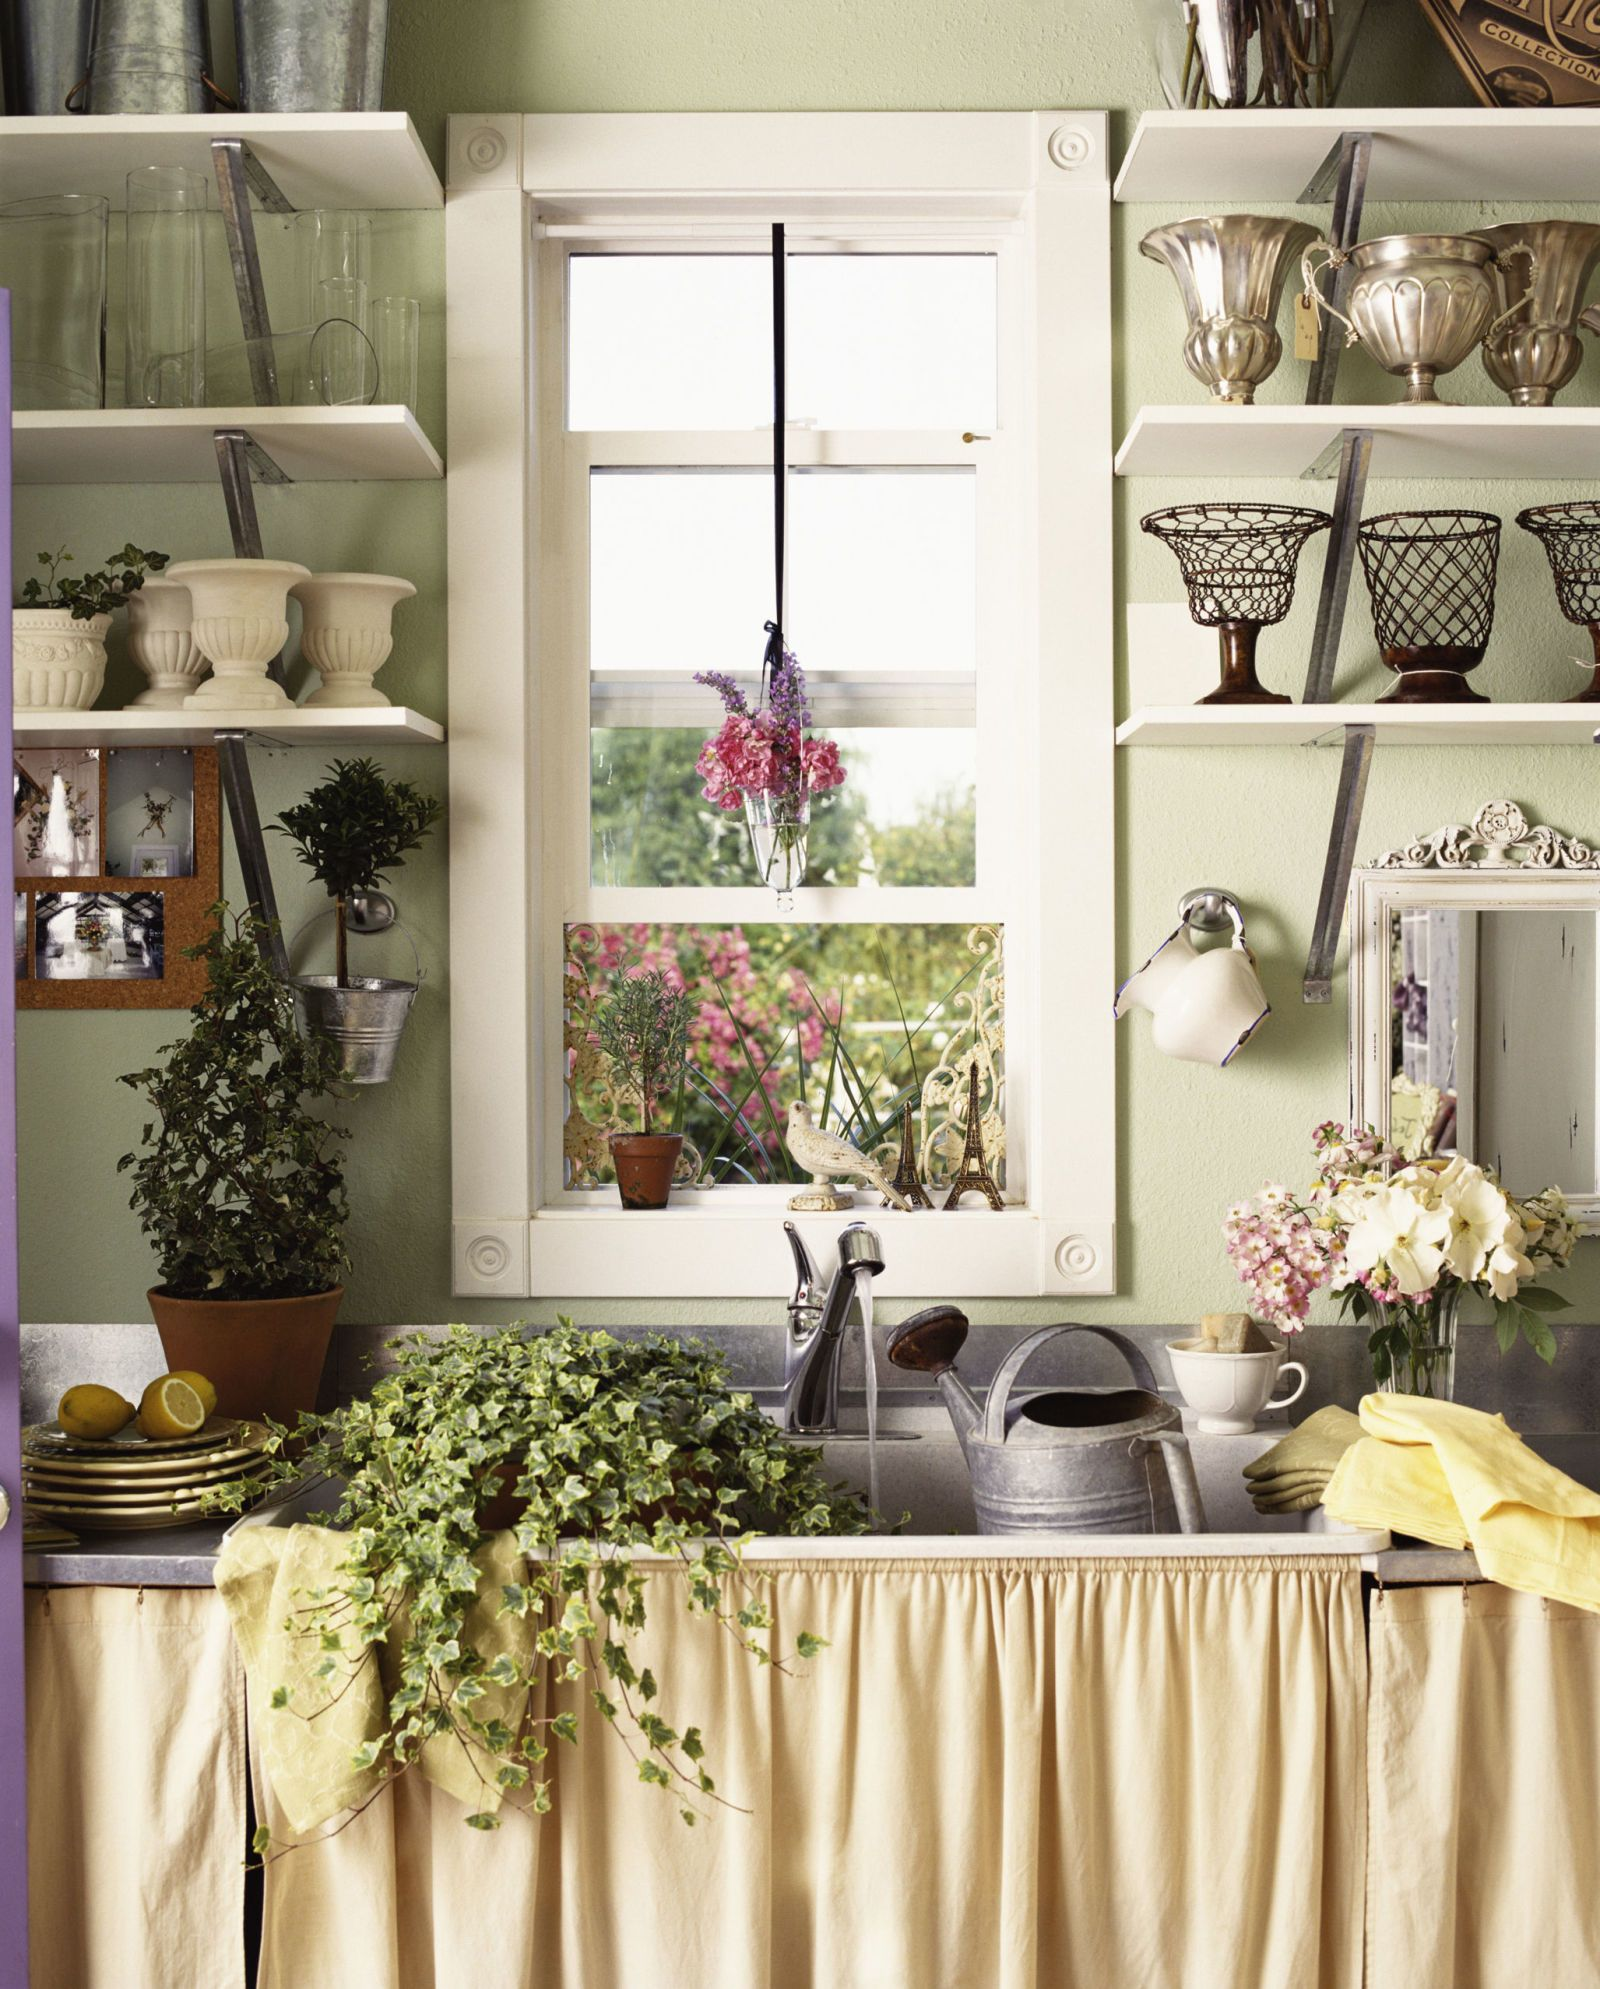 Scale is everything when you're decorating a small kitchen space.